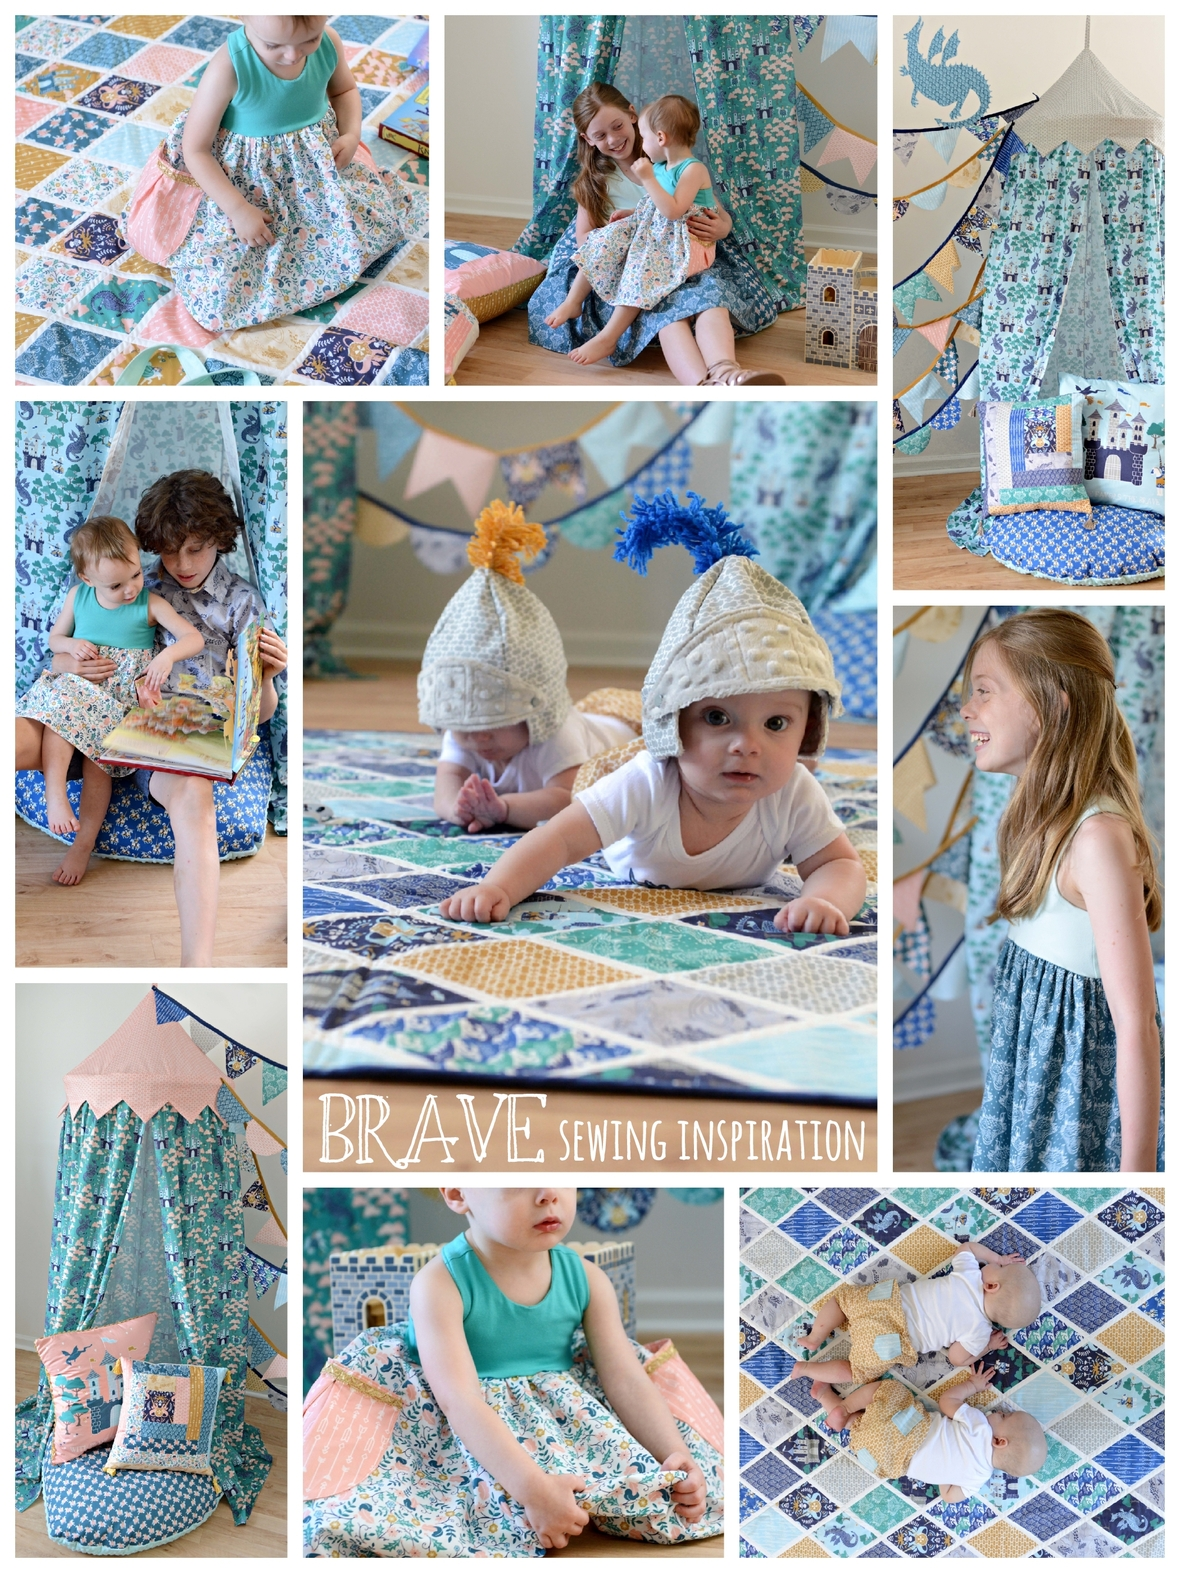 Brave Sewing Inspiration 2100